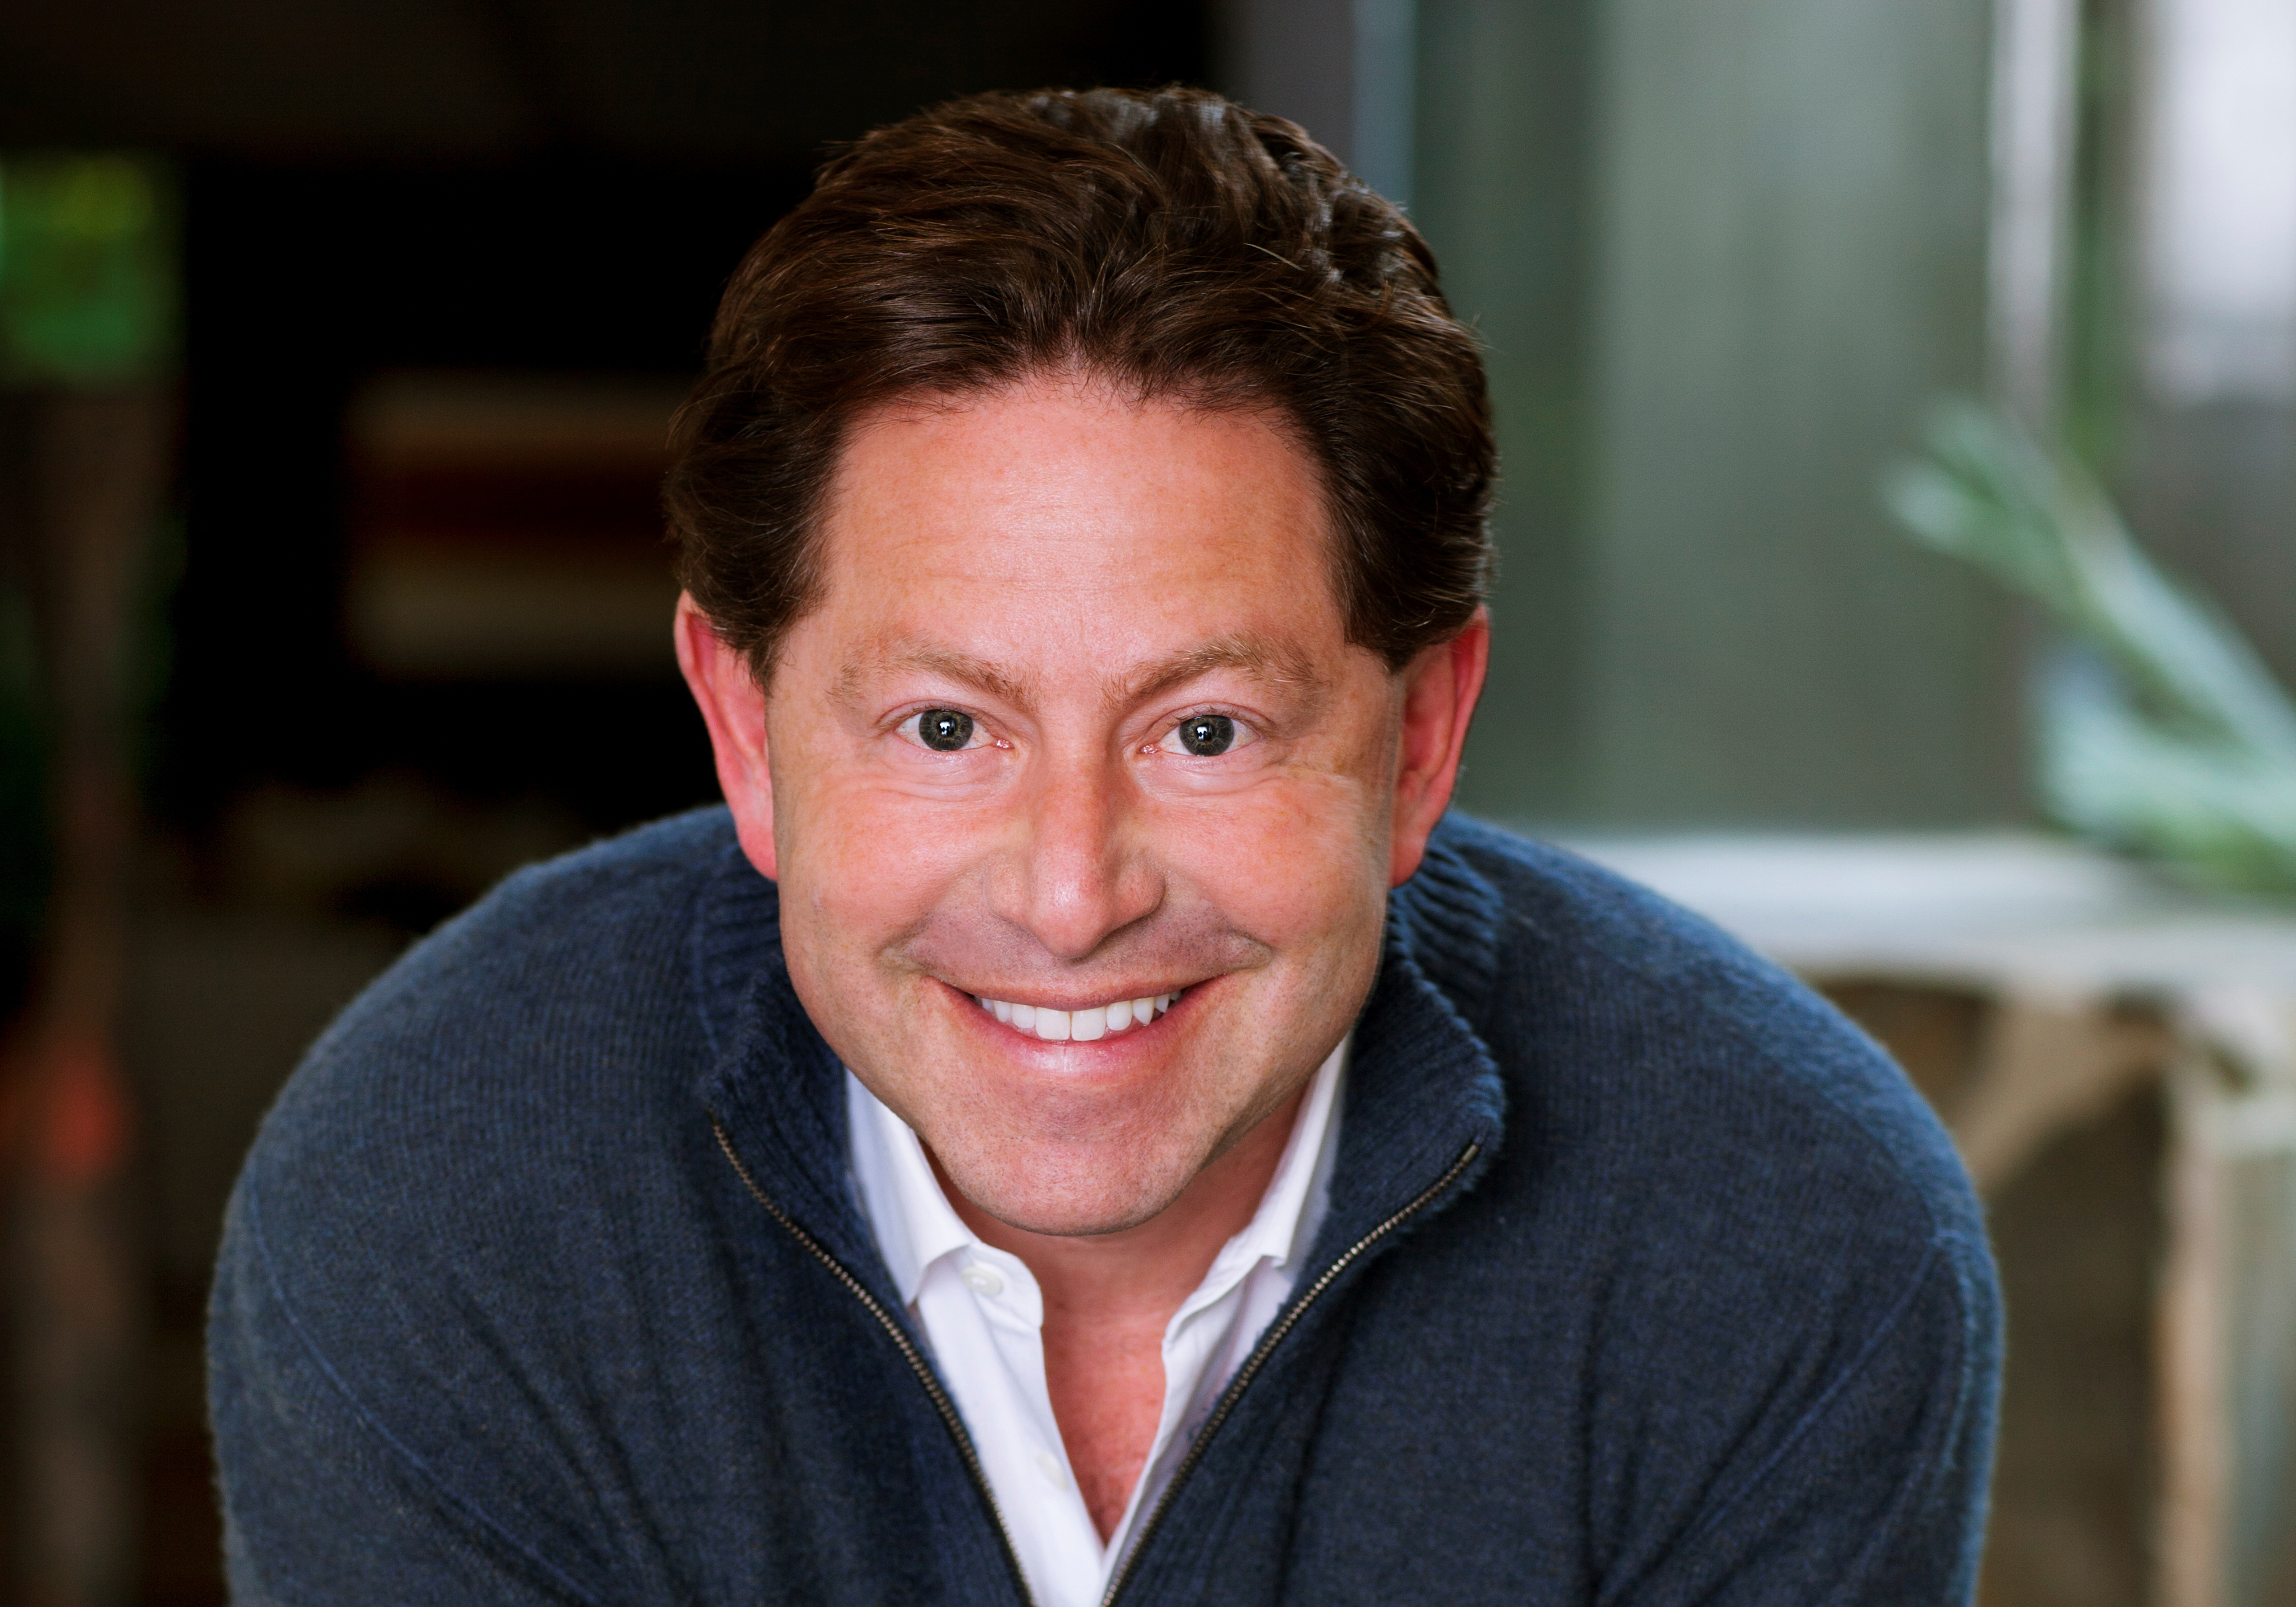 Bobby Kotick, the CEO of videogame maker Activision Blizzard Inc, is seen in this handout image obtained by Reuters on June 21, 2021. Activision Blizzard Inc/Handout via REUTERS